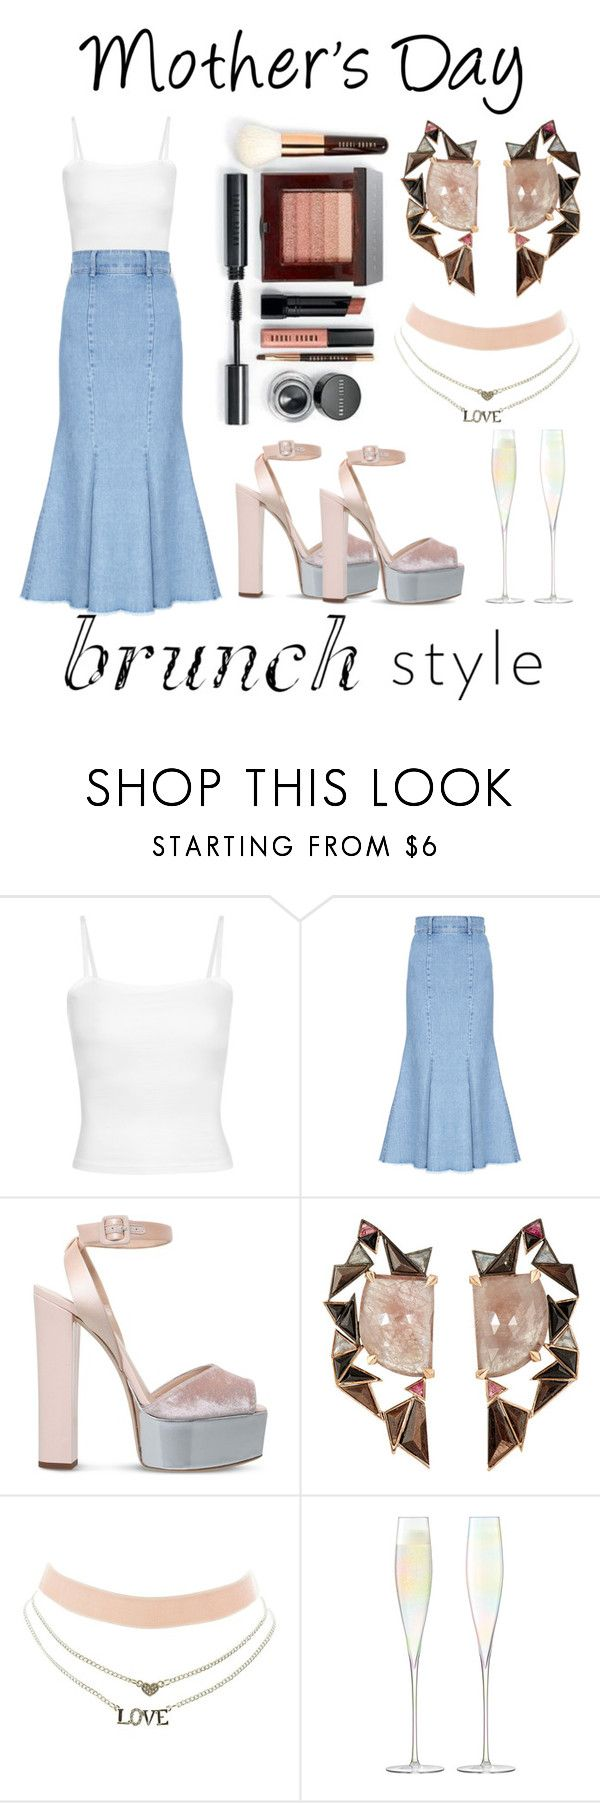 """""""Untitled #568"""" by mahiganatra ❤ liked on Polyvore featuring FLOW the Label, Giuseppe Zanotti, Nak Armstrong, Charlotte Russe and LSA International"""